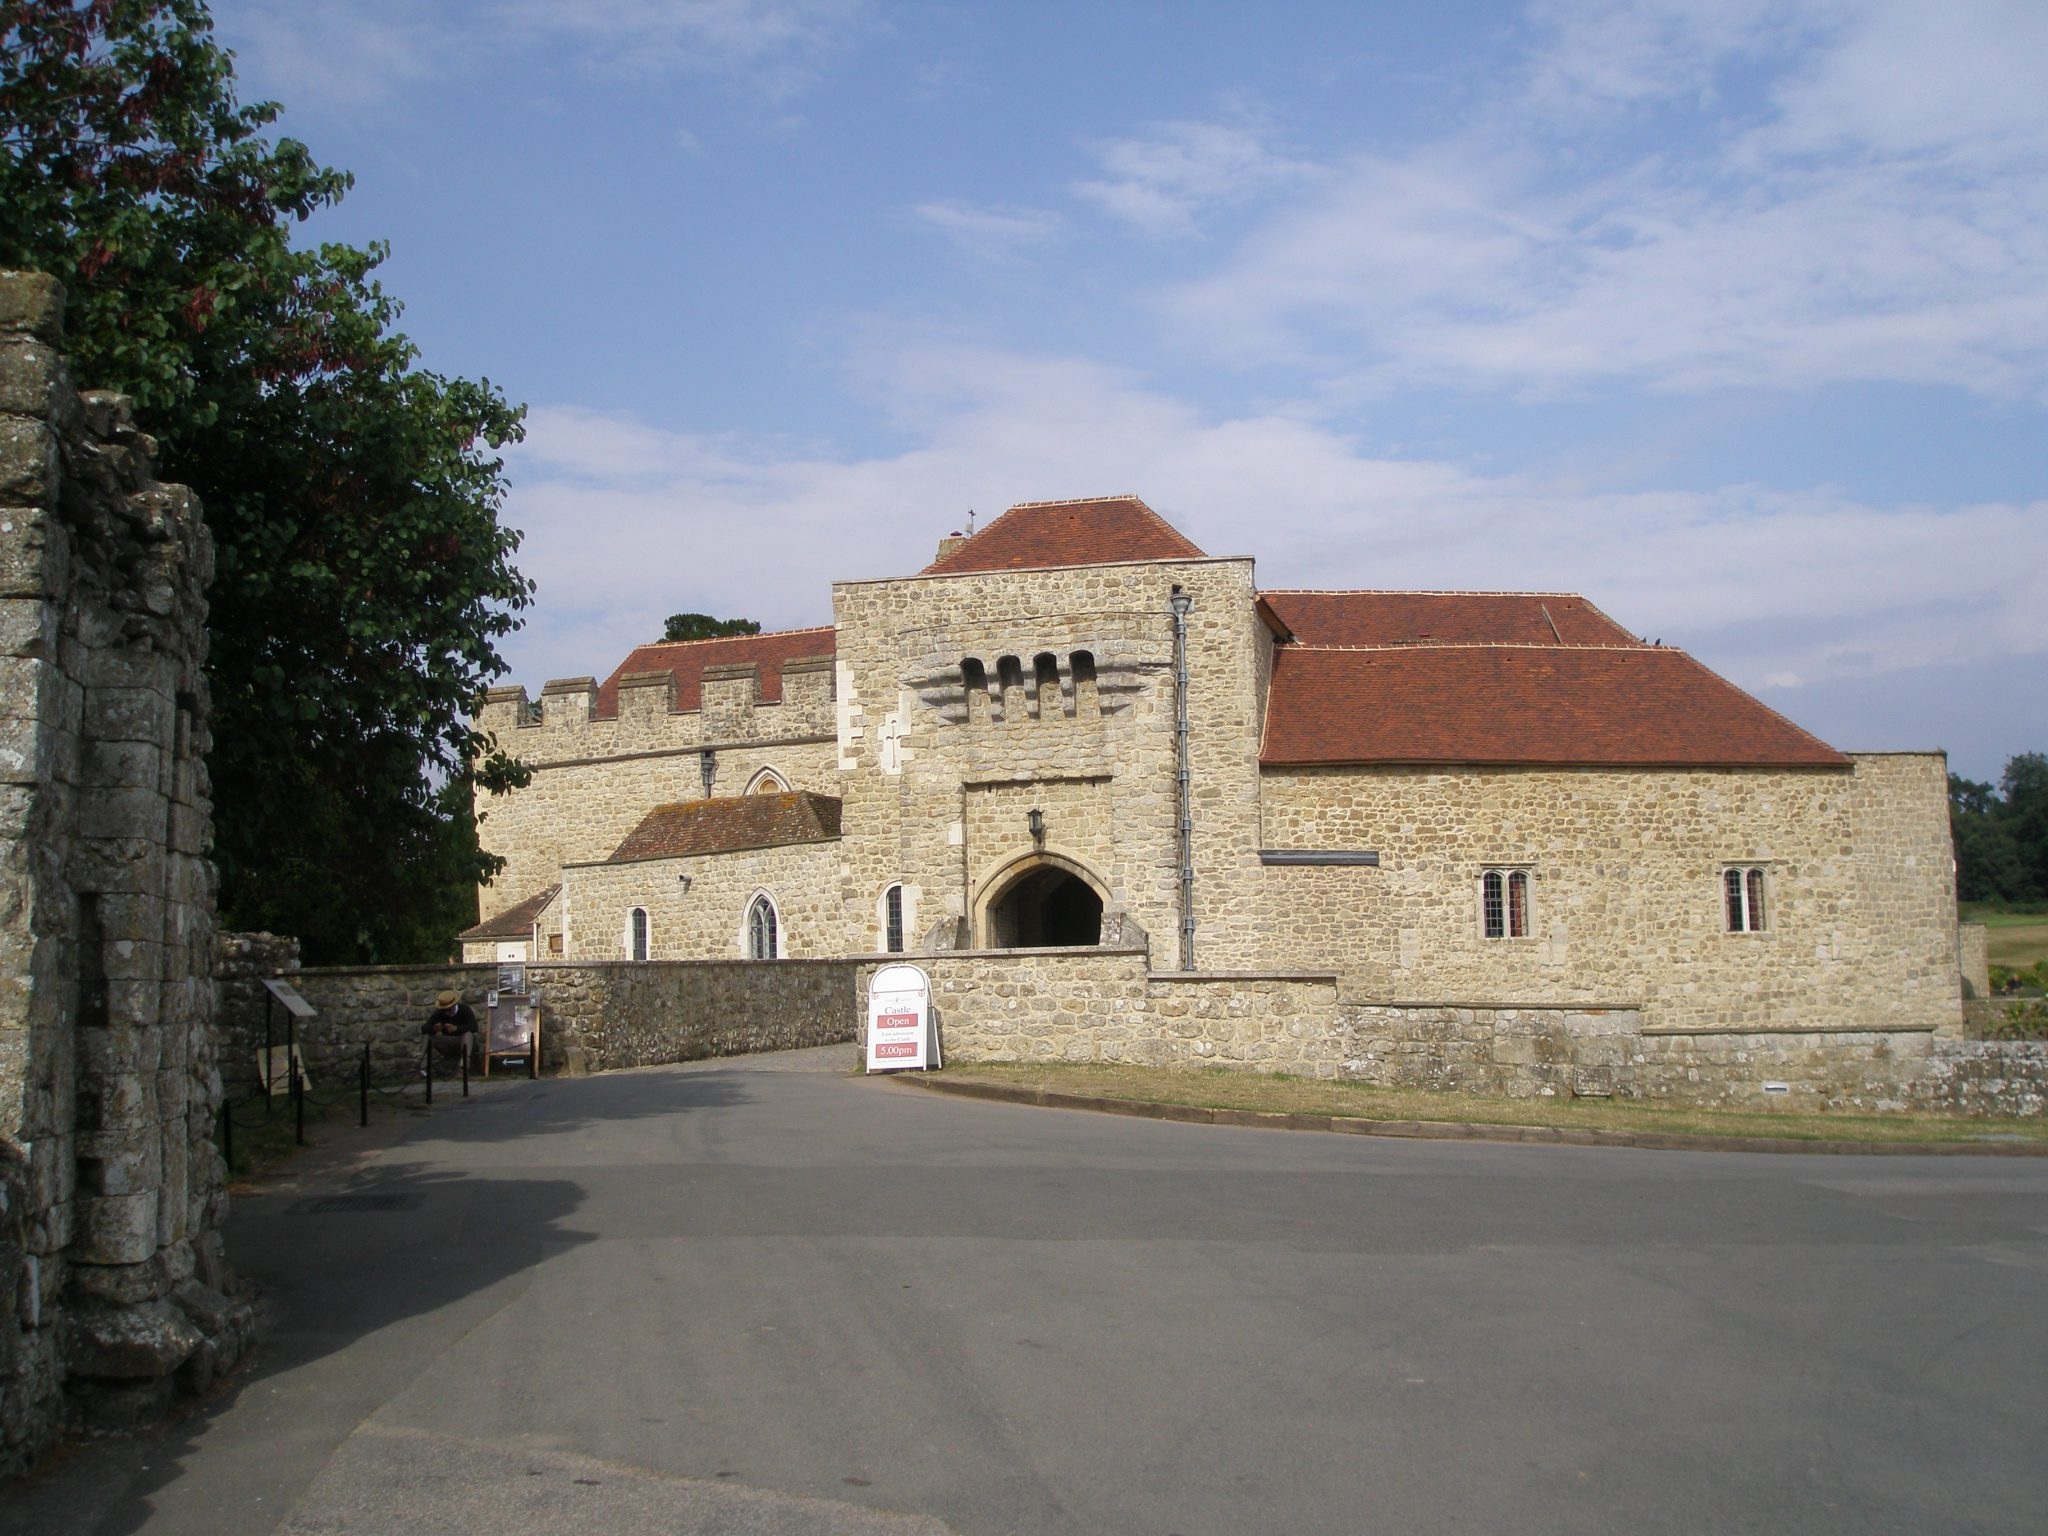 We approach the Gatehouse, part of the original 12th century stronghold, which was then enlarged by Edward I in 1280.